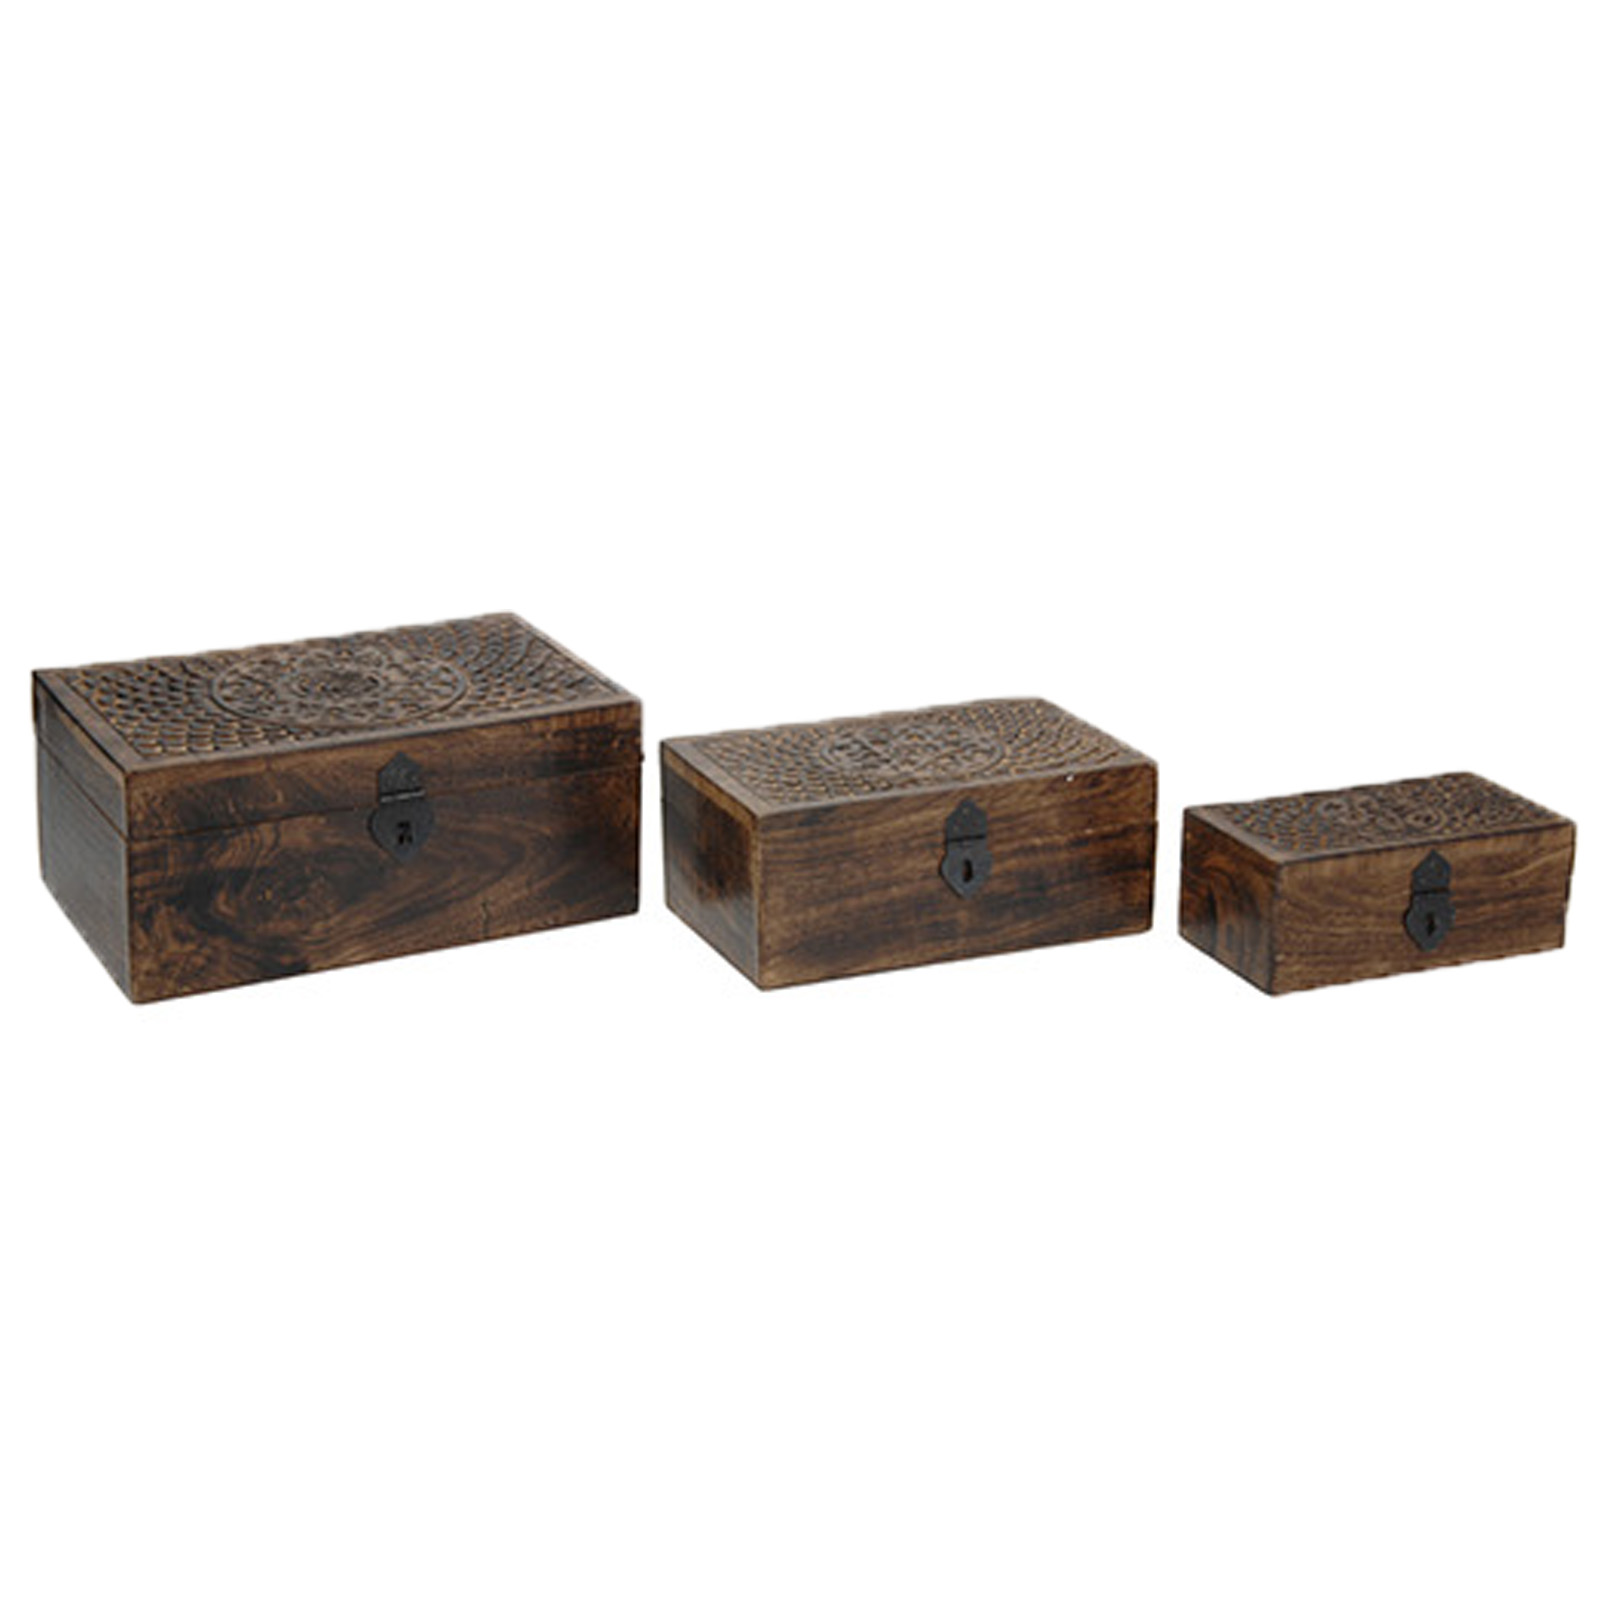 holz schatulle 3er set schmuckschatulle holz box truhe kiste schmuckbox antik ebay. Black Bedroom Furniture Sets. Home Design Ideas